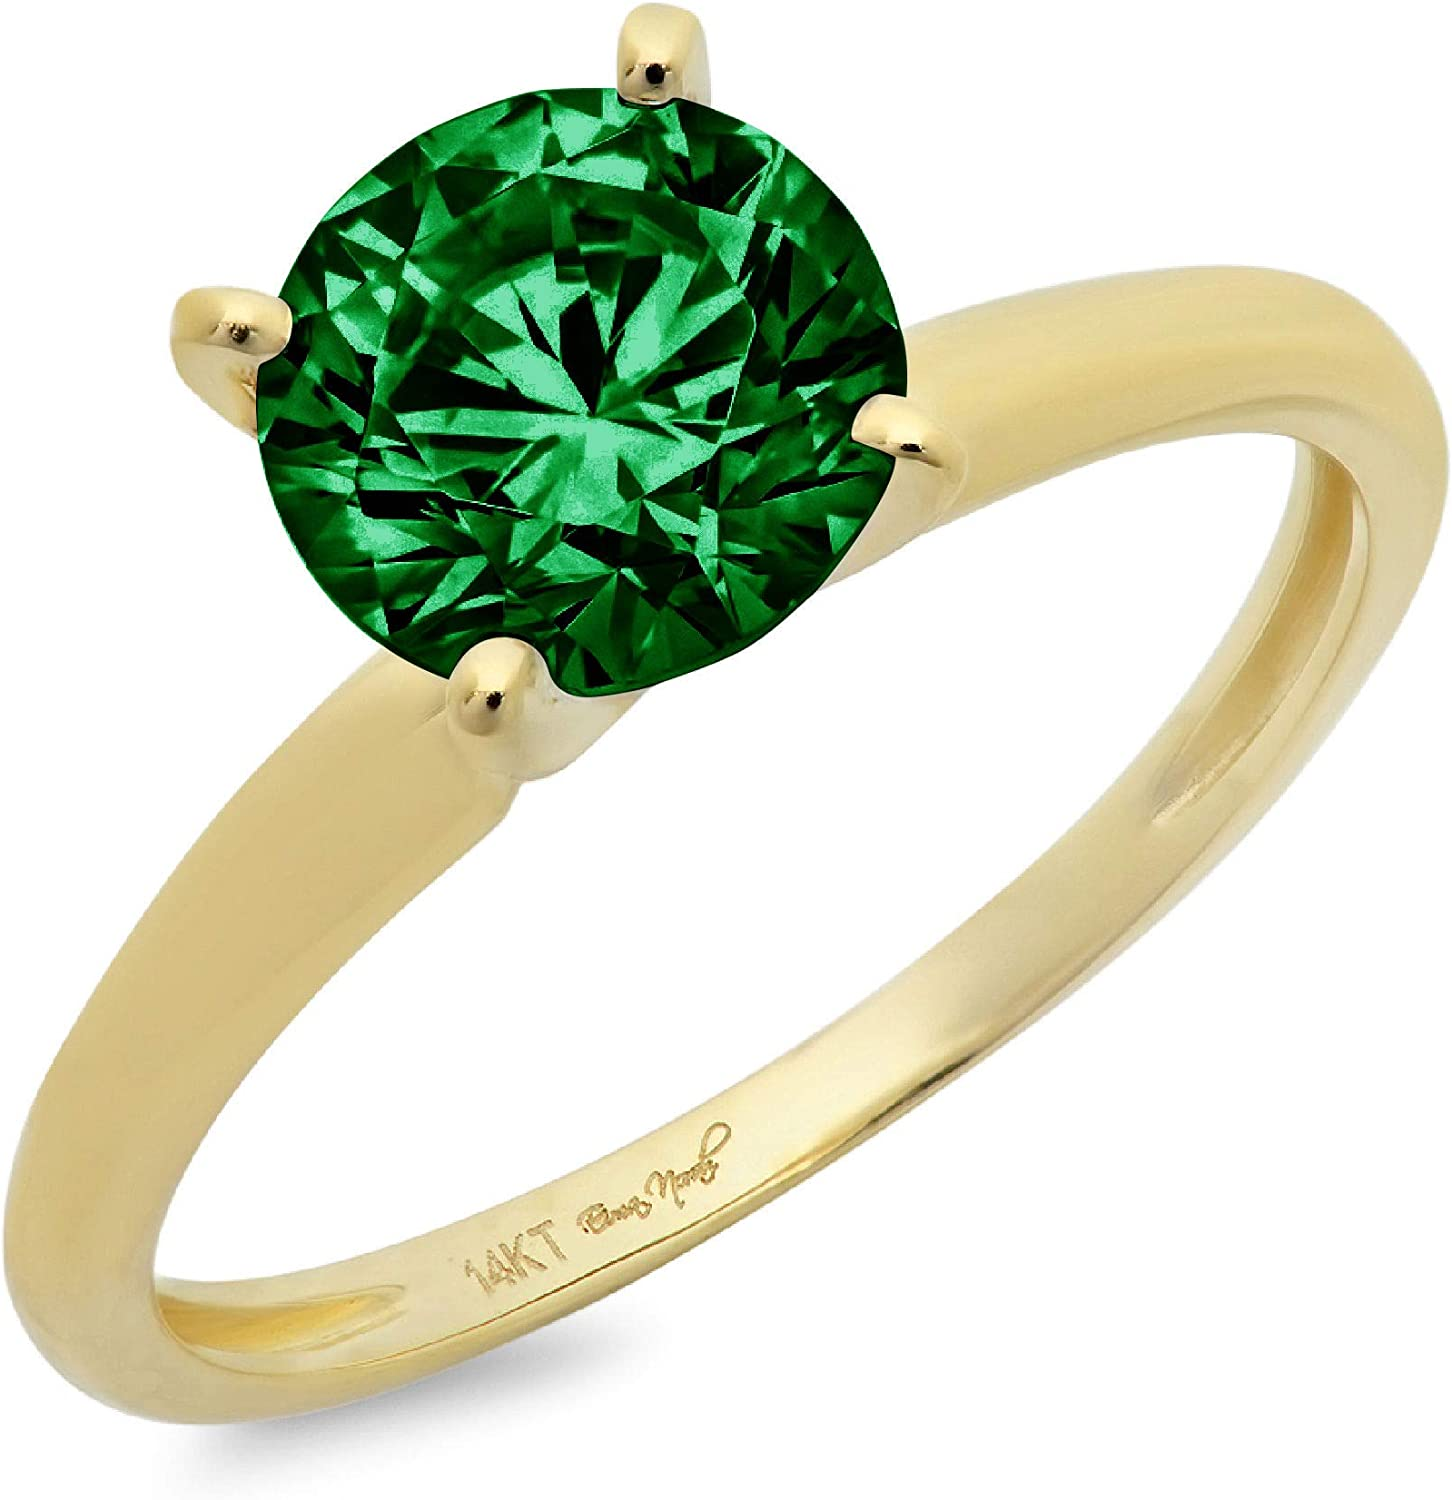 2.4ct Brilliant Round Cut Solitaire Flawless Simulated CZ Green Emerald Ideal VVS1 4-Prong Engagement Wedding Bridal Promise Anniversary Designer Ring in Solid 14k Yellow Gold for Women